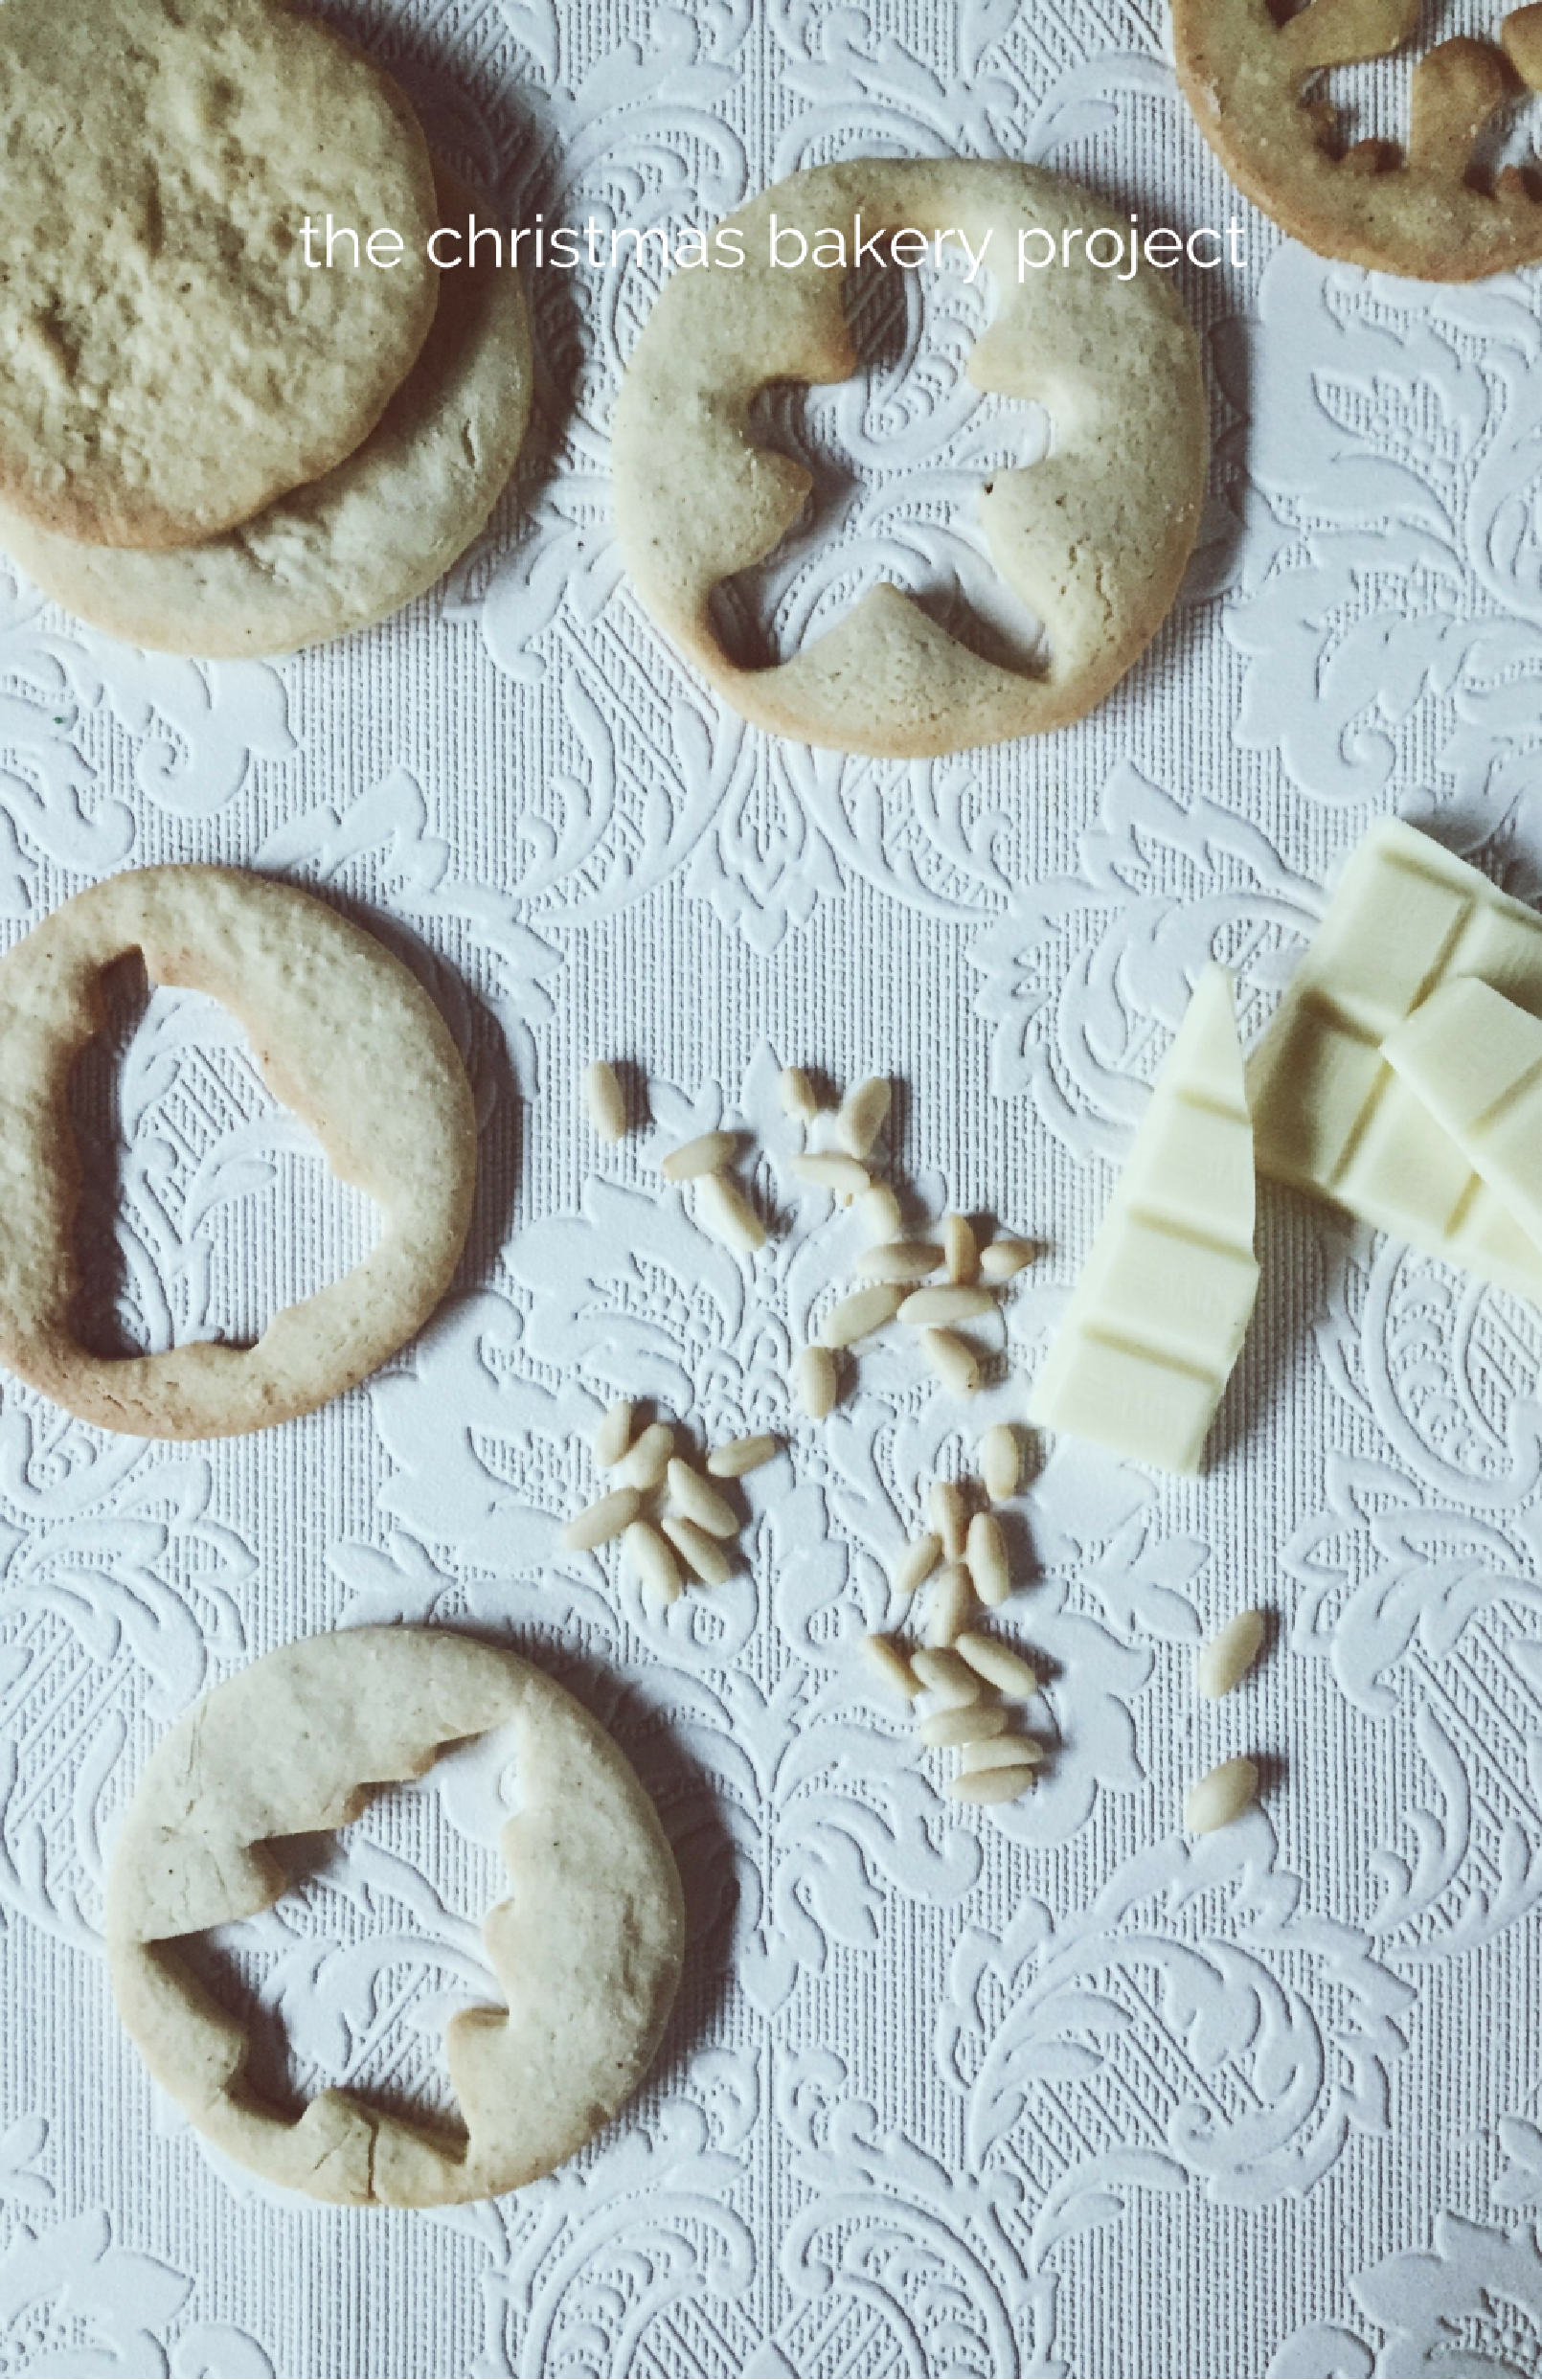 Italian christmas cookie recipes: pine nuts, mascarpone and white chocolate icing